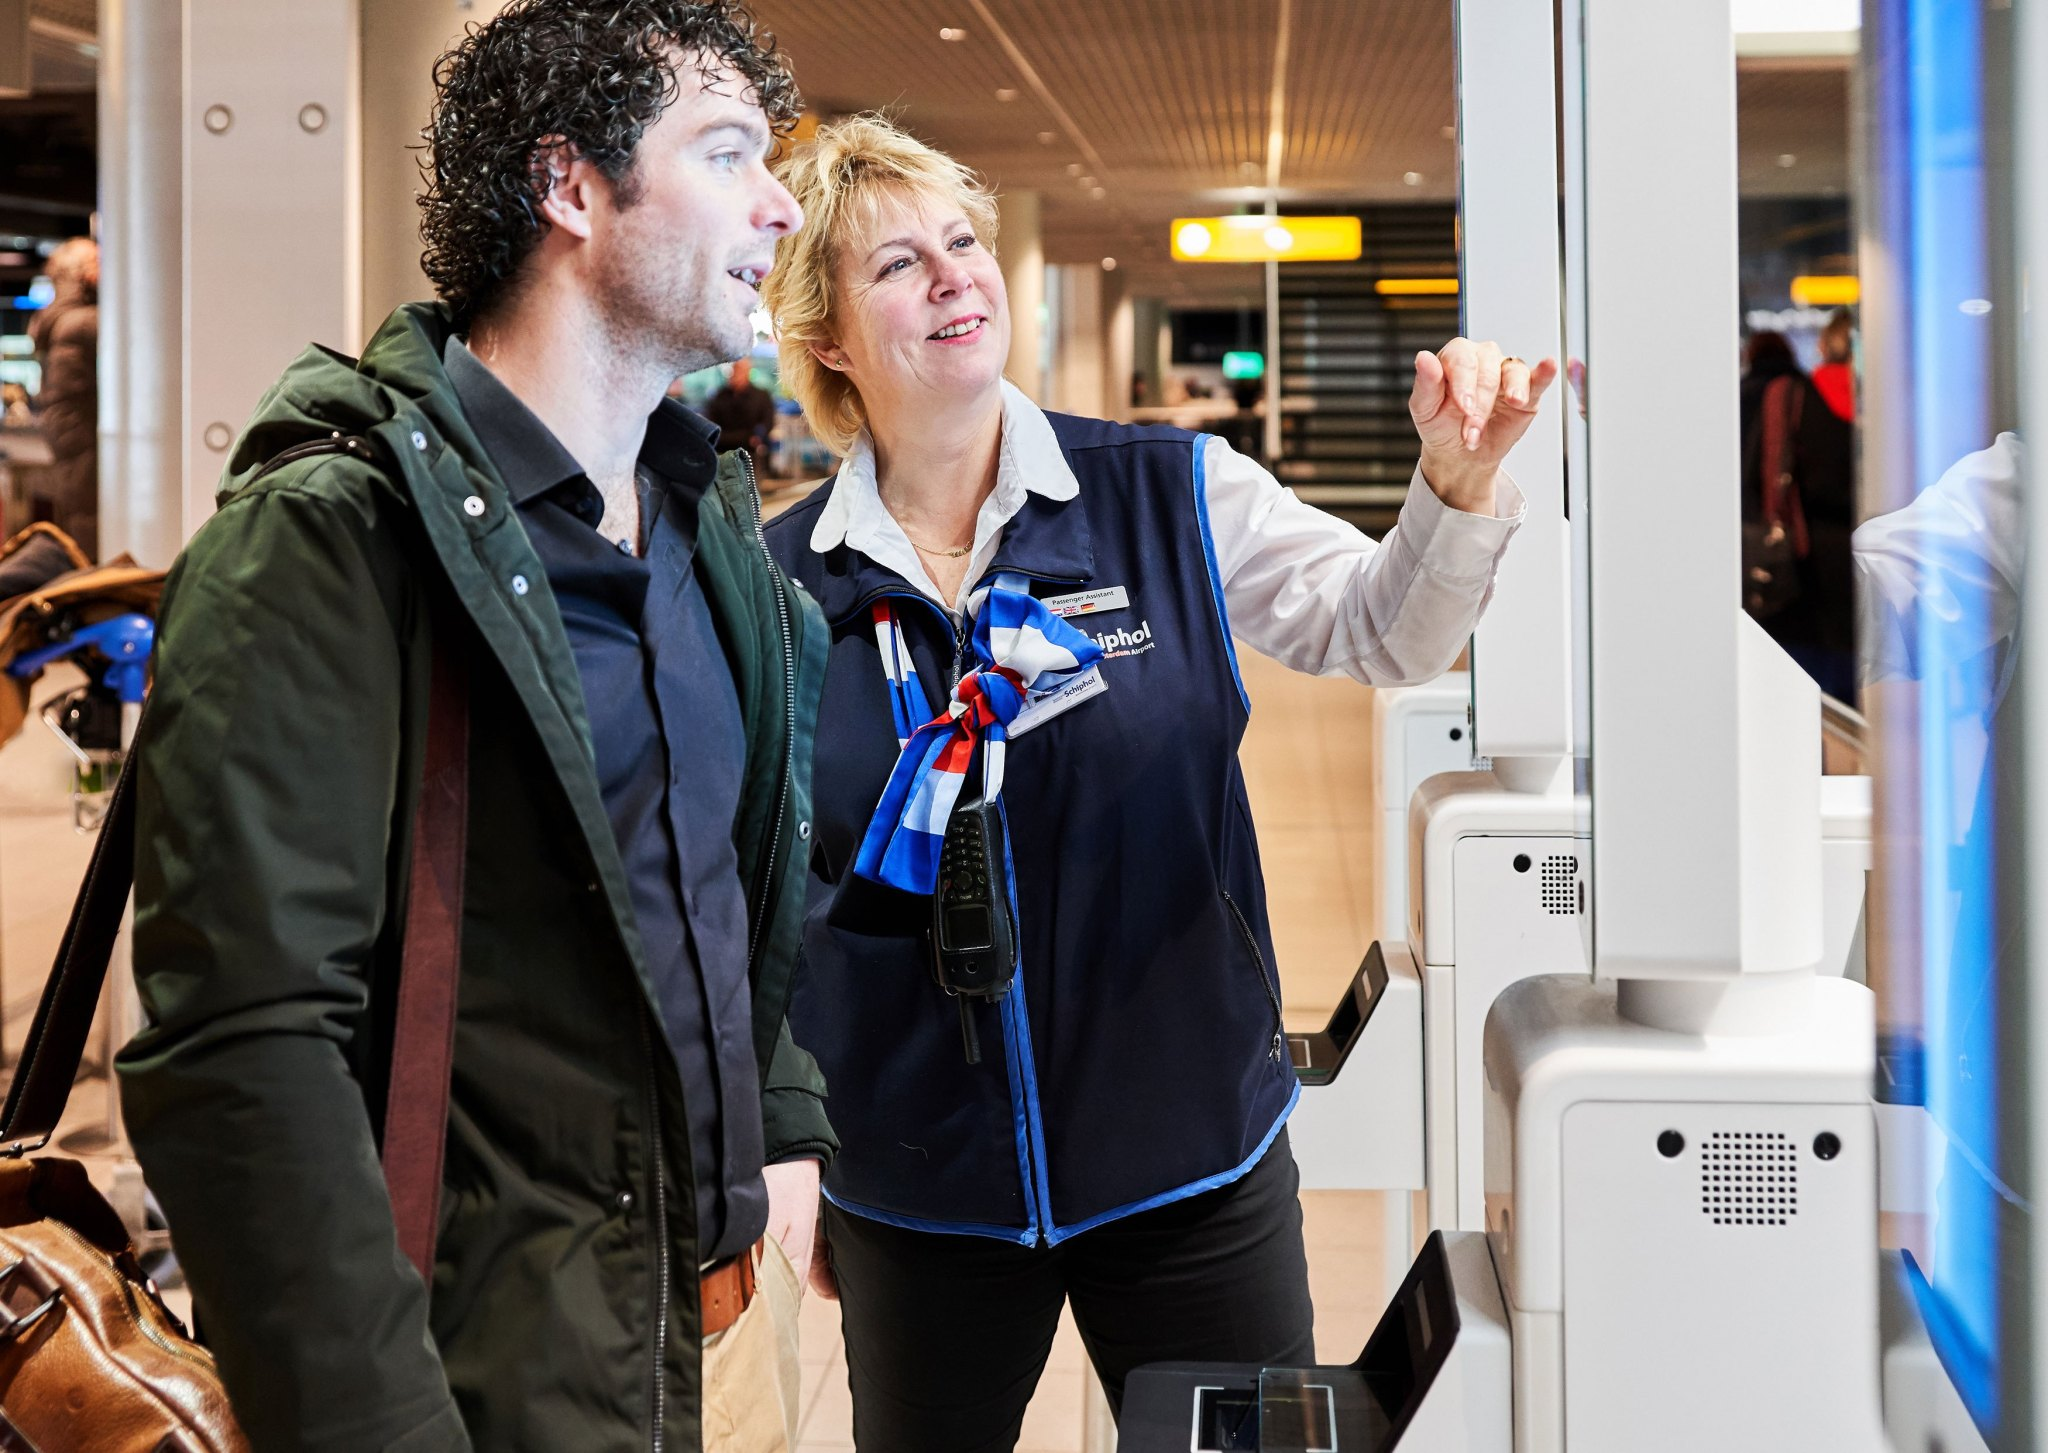 facial-recognition-boarding-Amsterdam-Airport-Schiphol 1